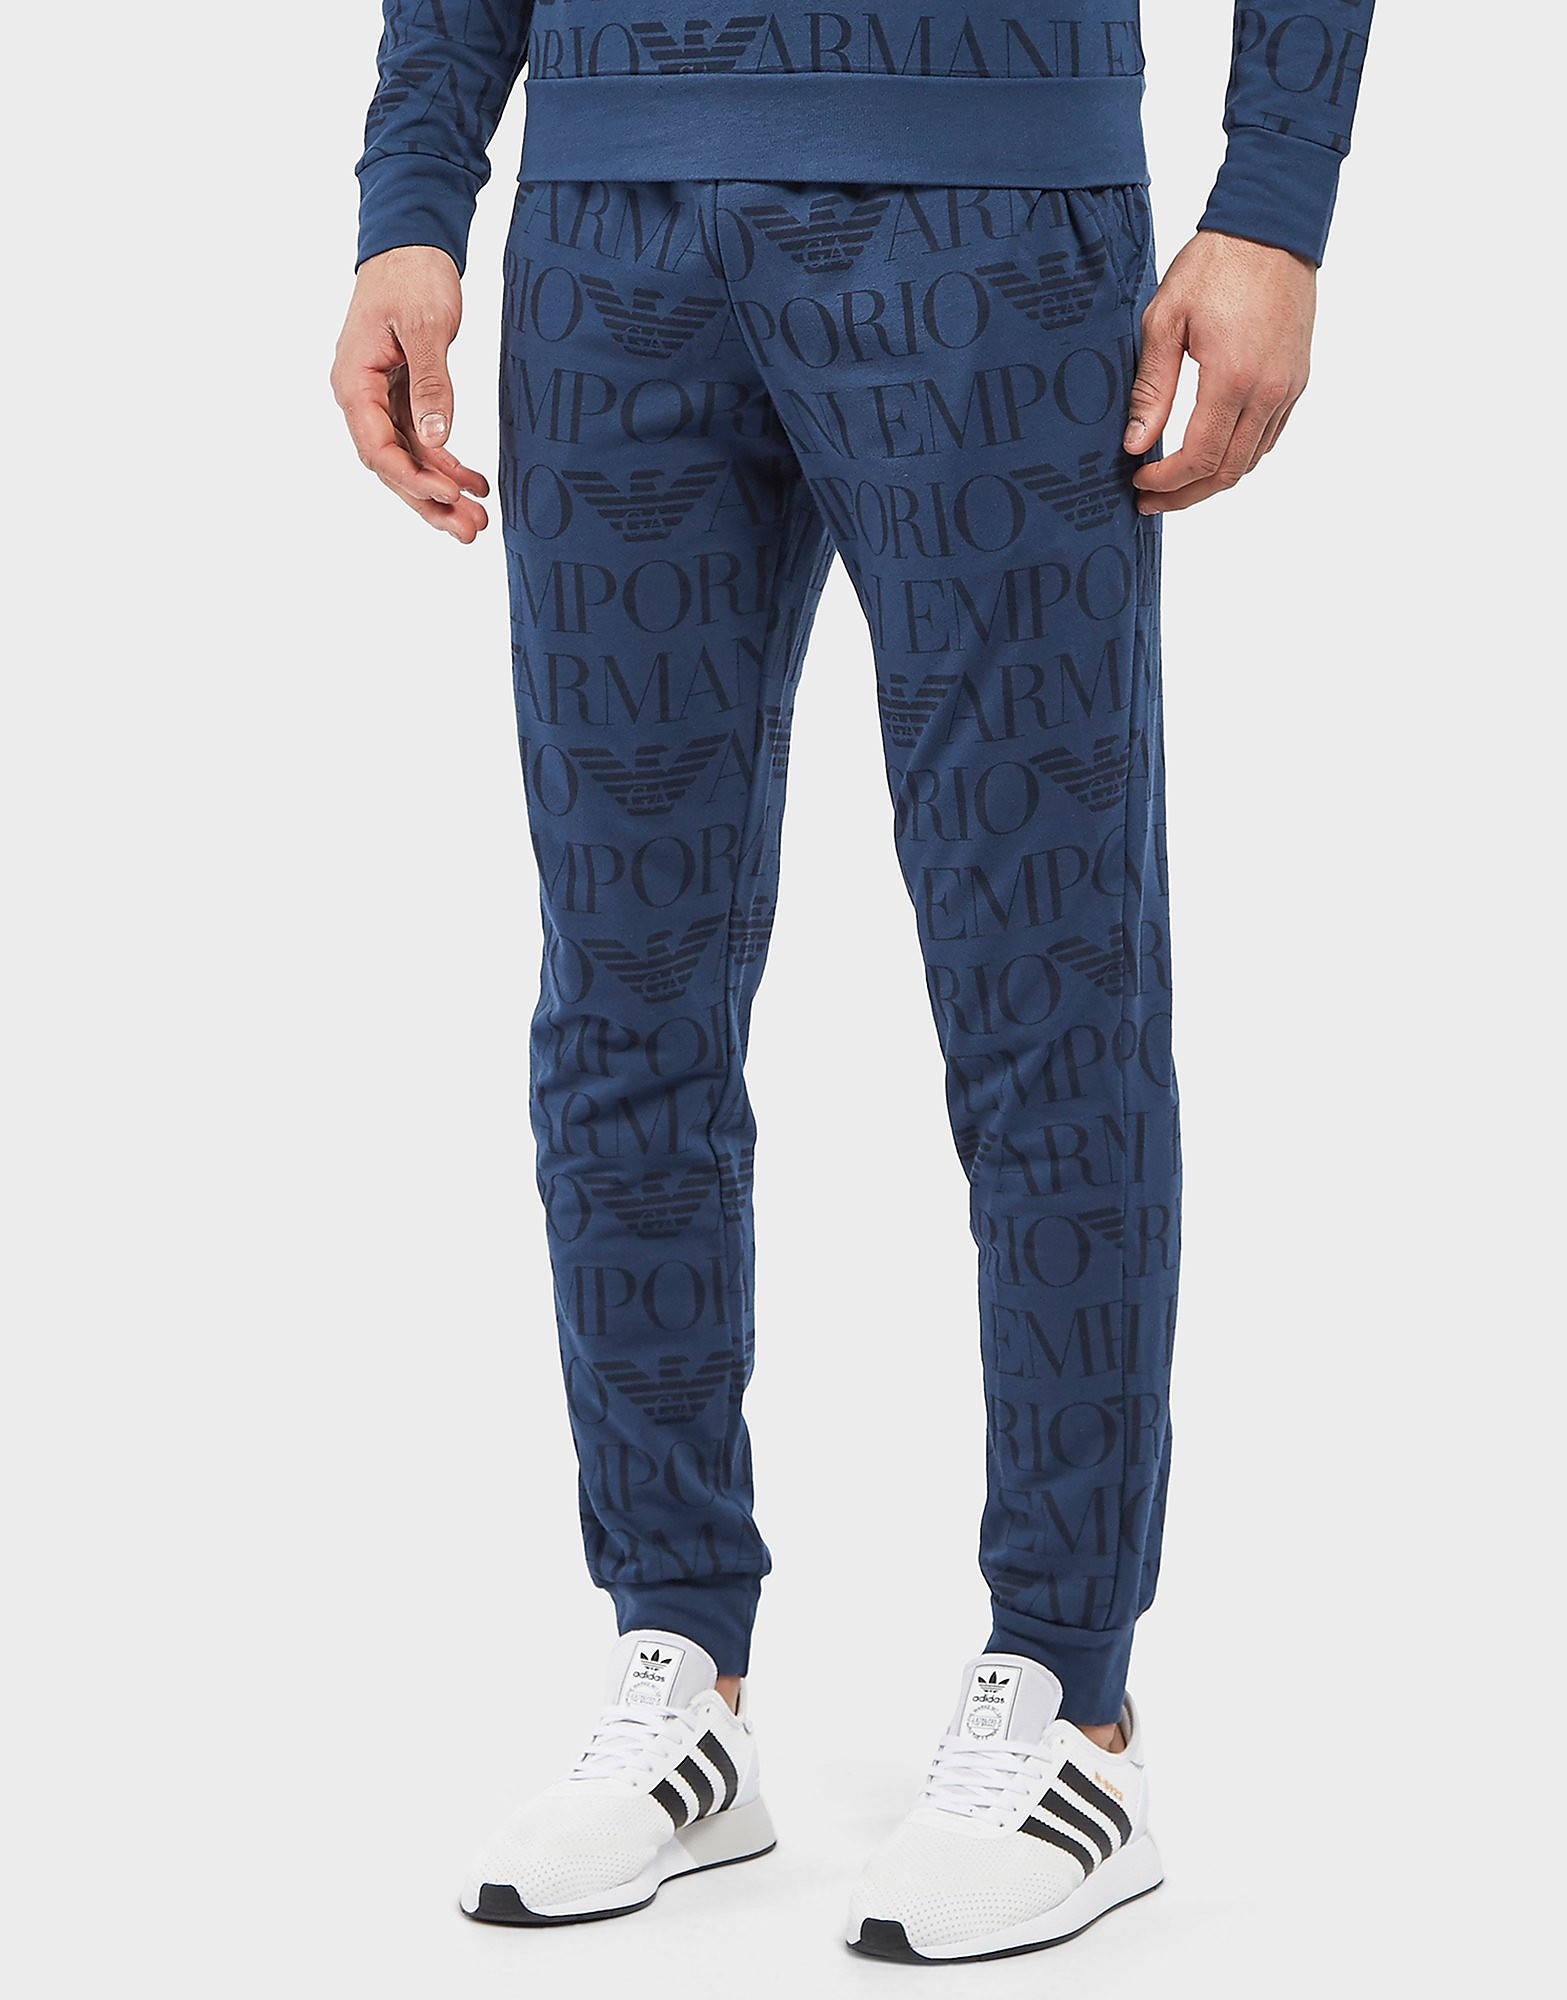 Emporio Armani All Over Print Track Pants